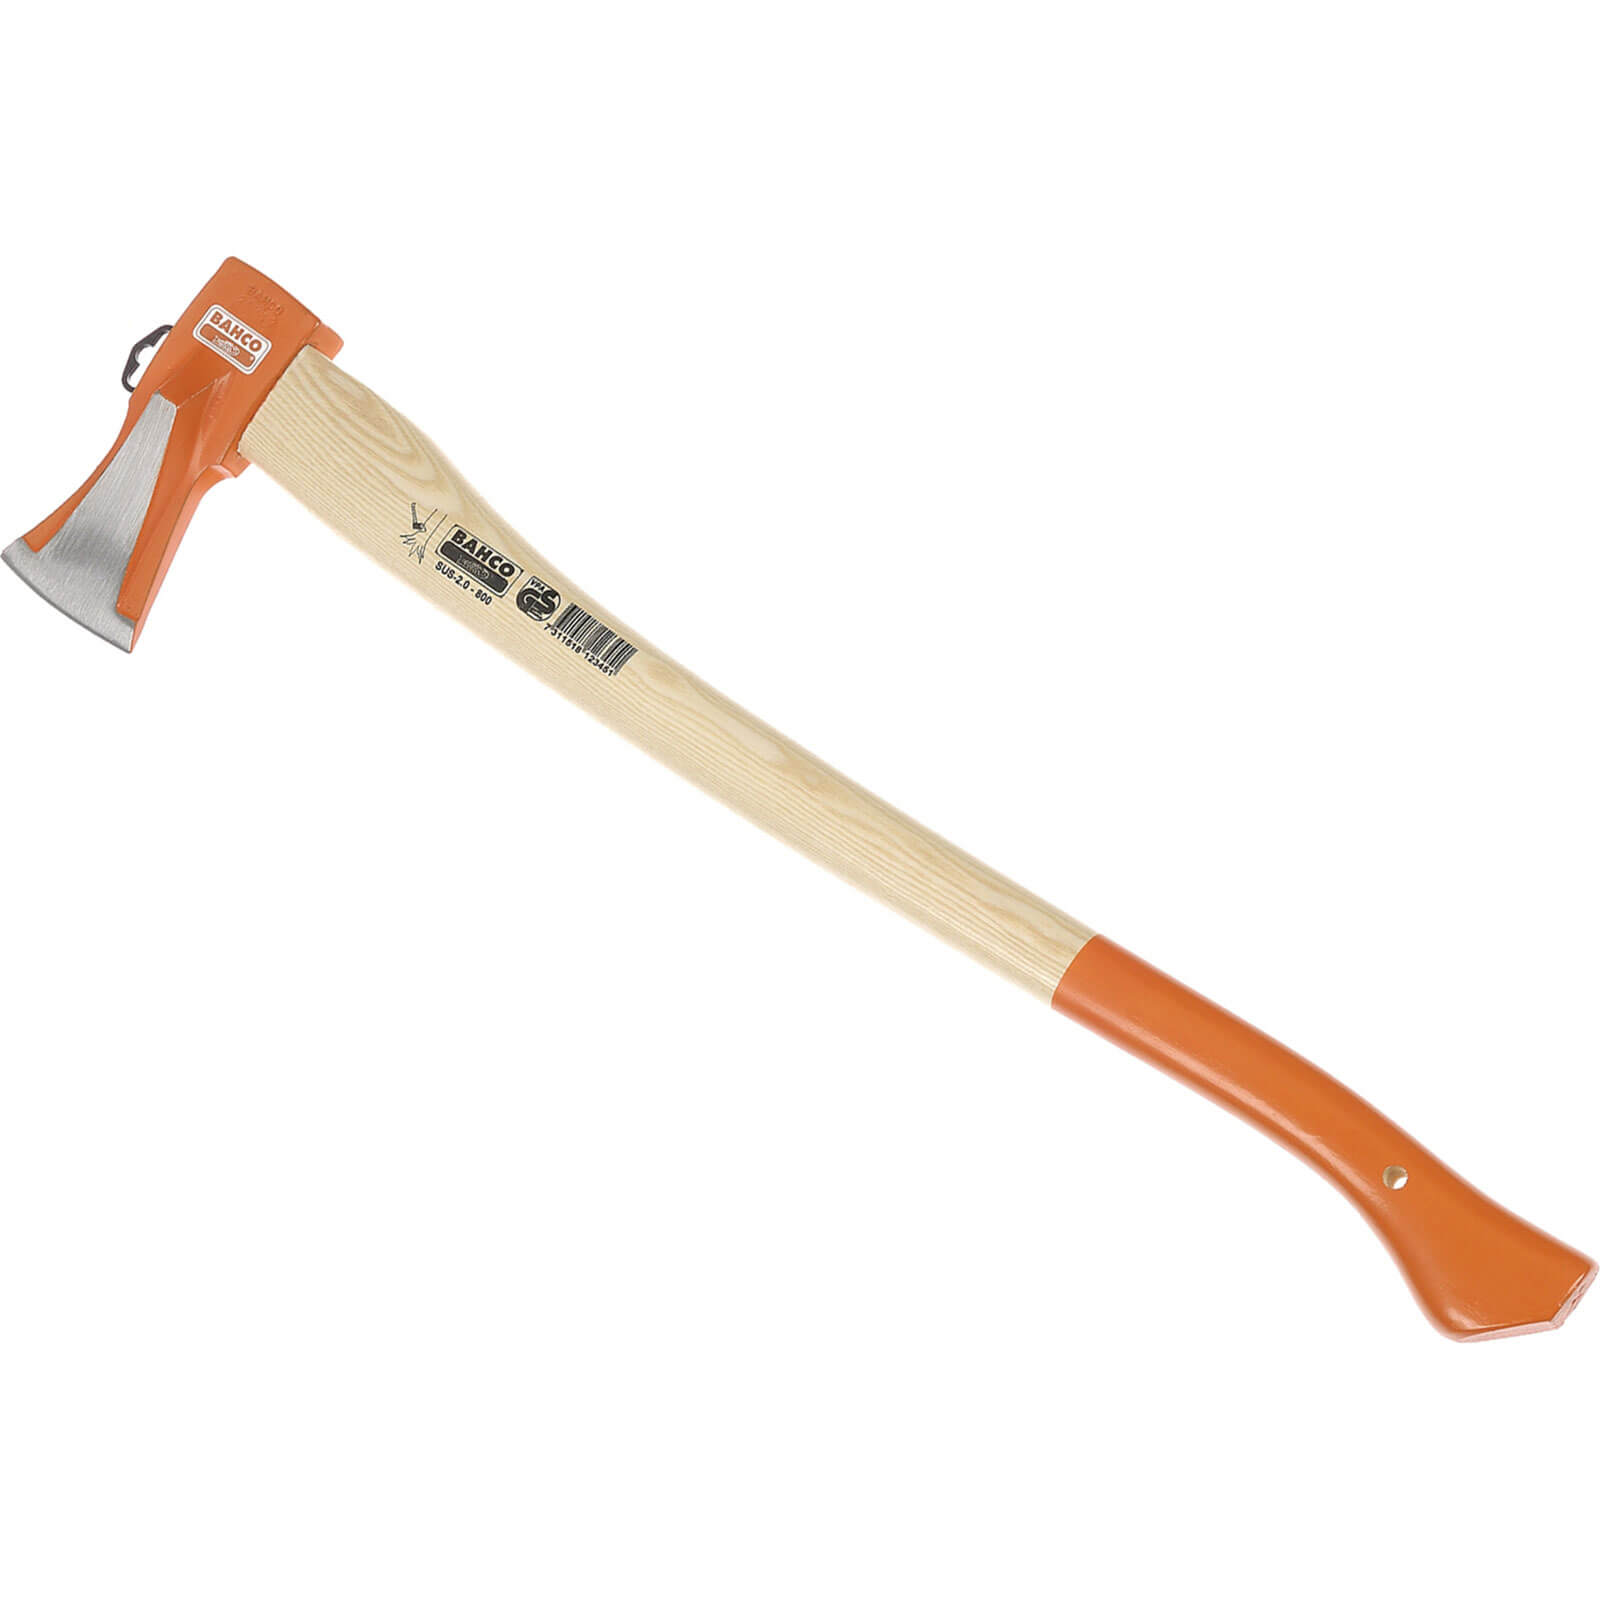 Buy cheap bahco axe compare garden tools prices for best for Affordable garden tools